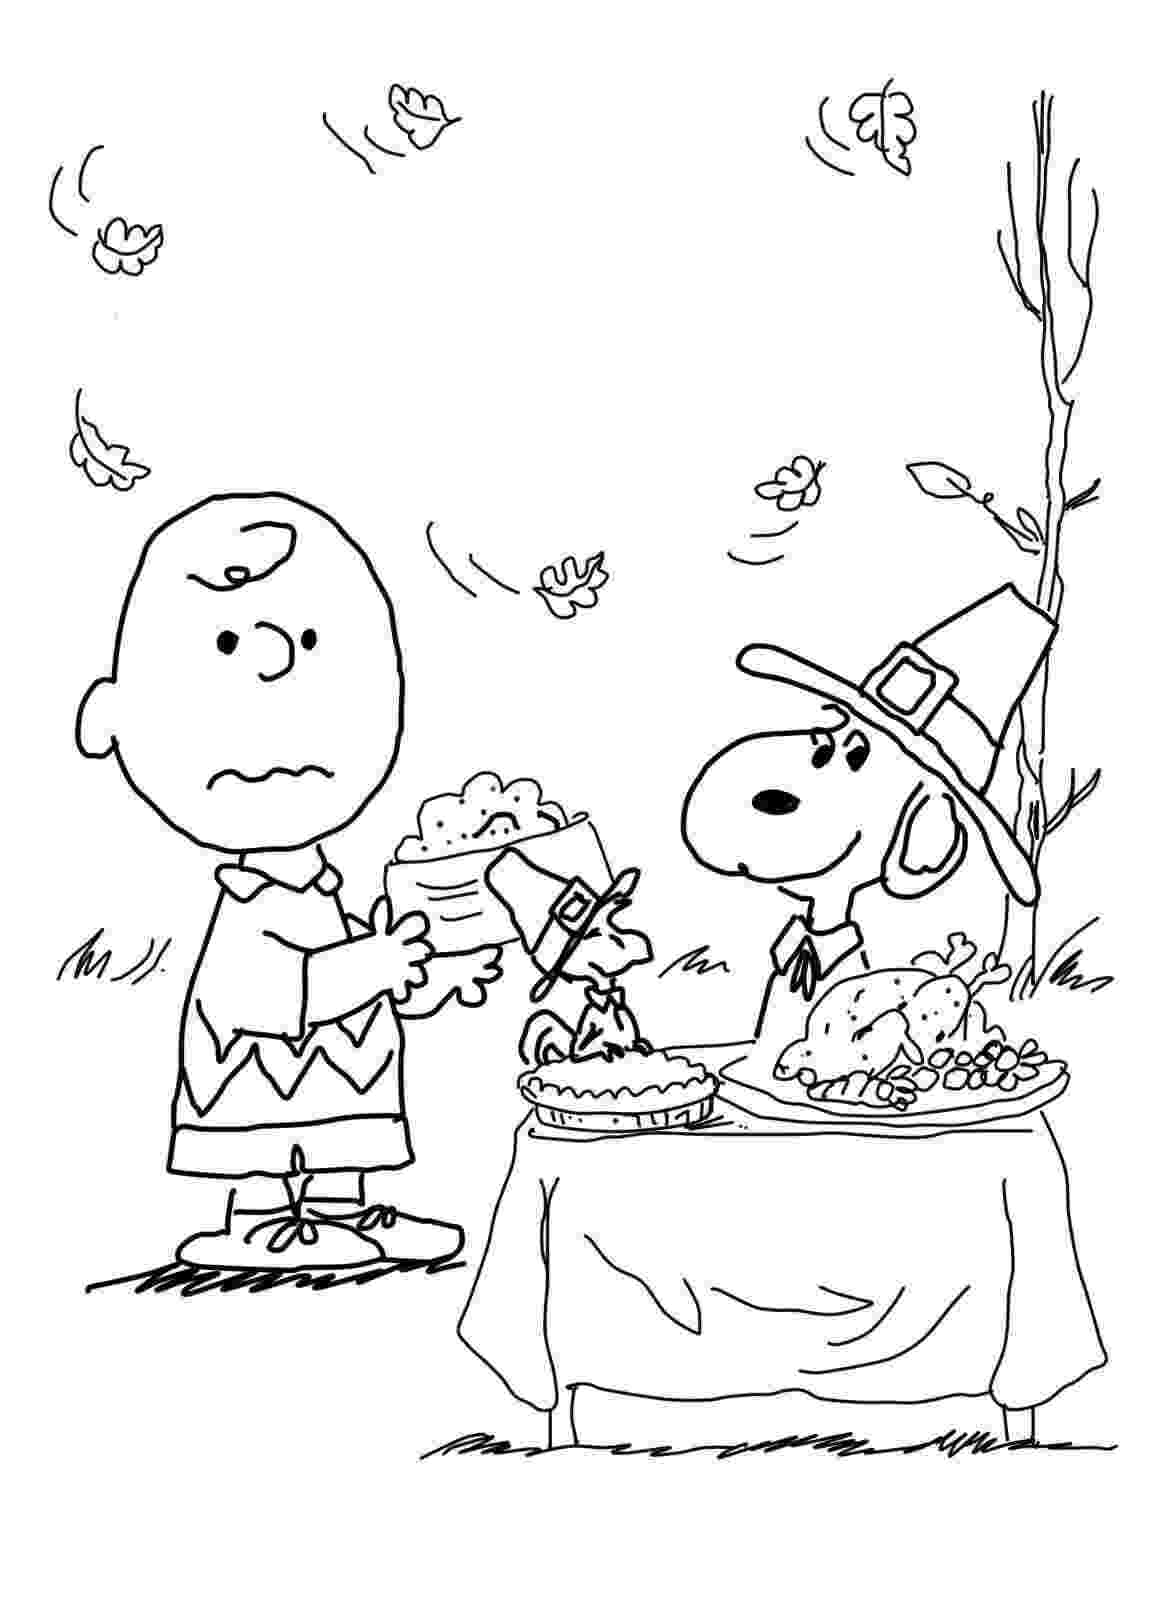 charlie brown thanksgiving coloring pages charlie brown squid army coloring charlie pages thanksgiving brown